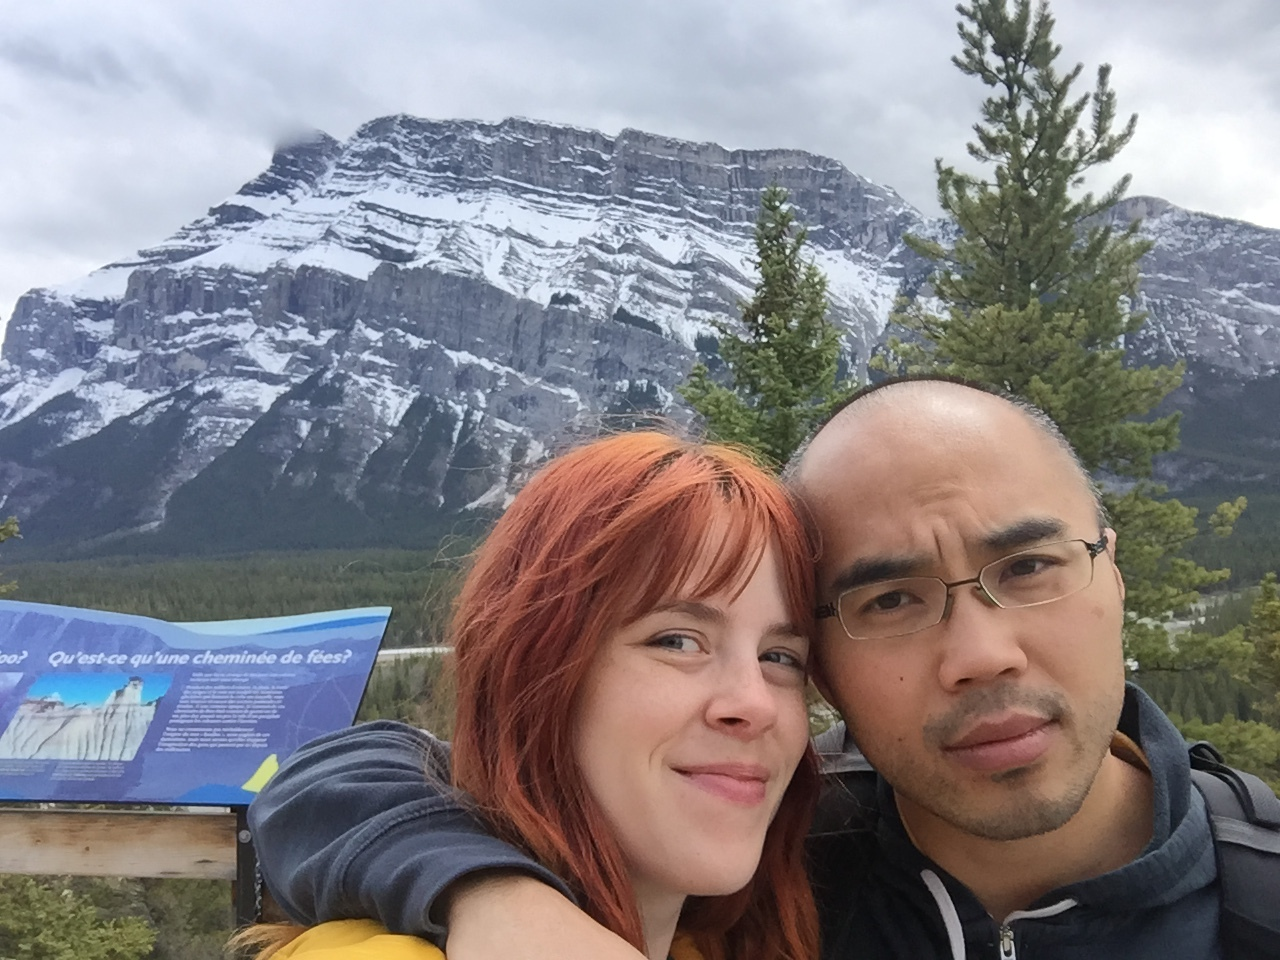 That one time he took me to Banff, still no smile.